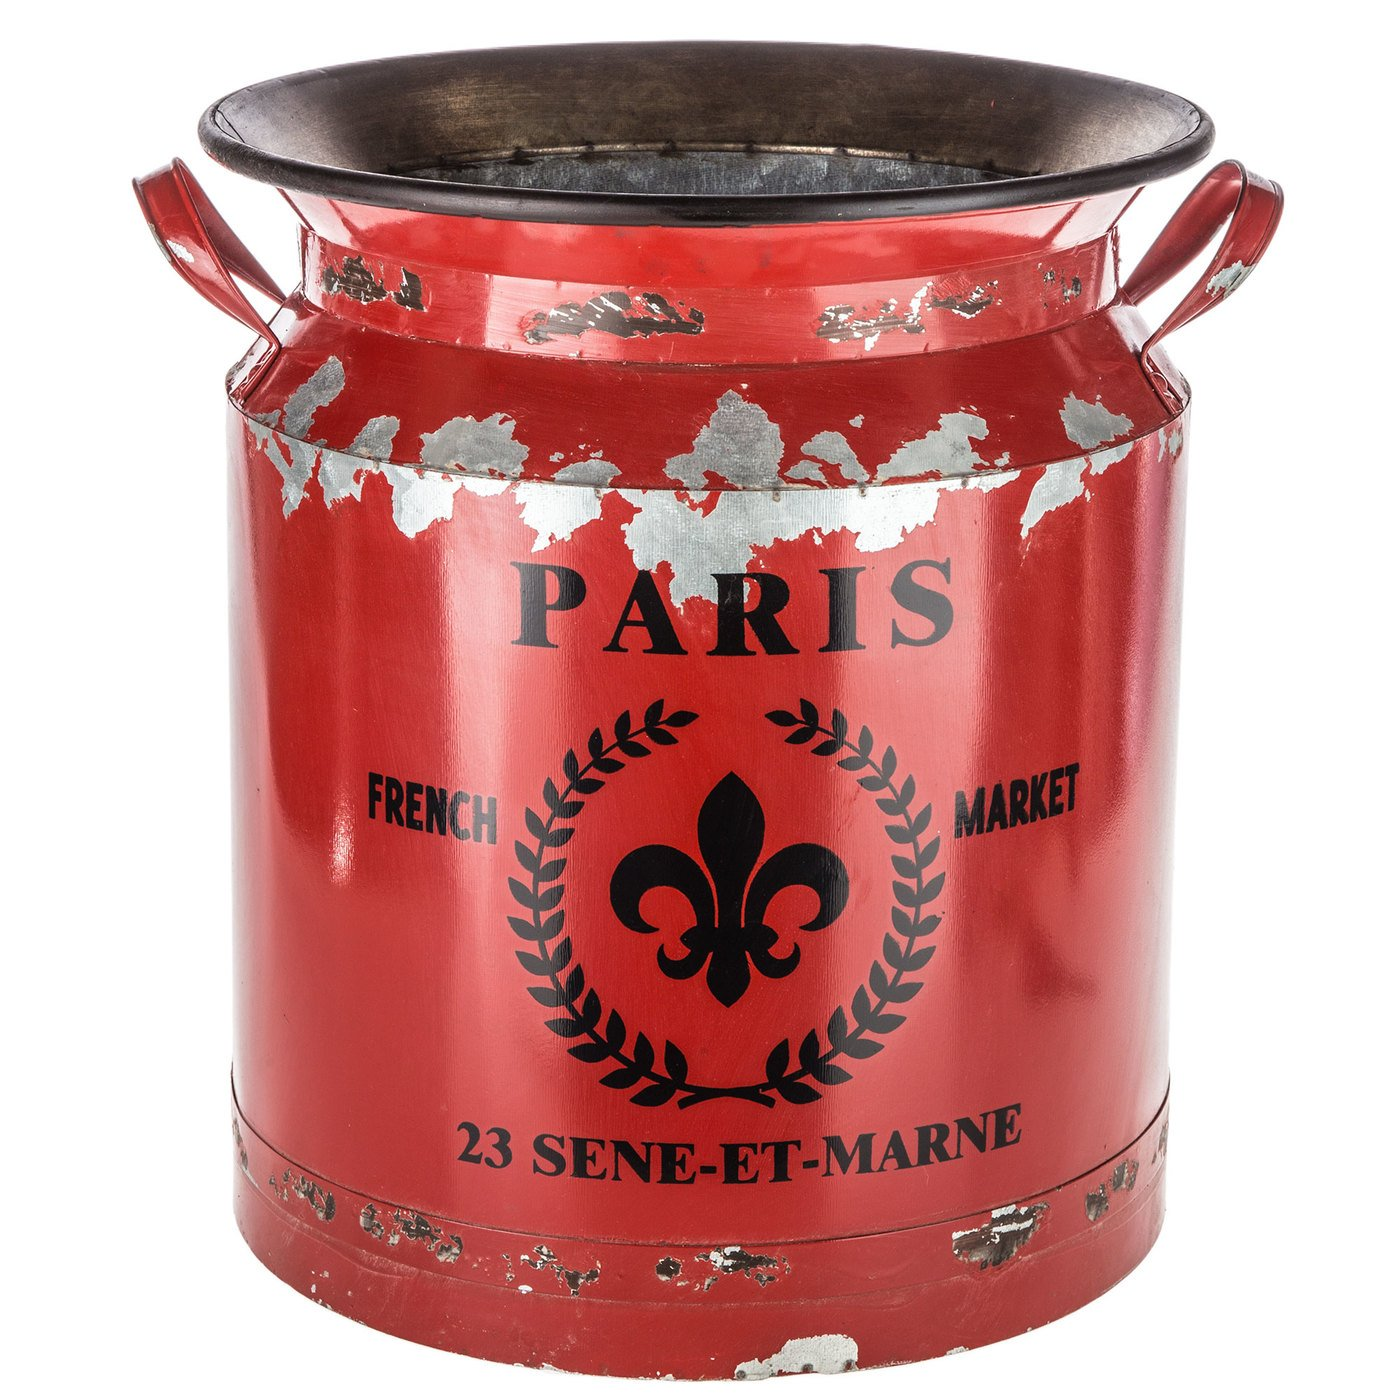 Rustic Vintage Red Paris Milk Can Distressed French Style Country Rustic Primitive Jug Vase Milk Can for Home Decoration